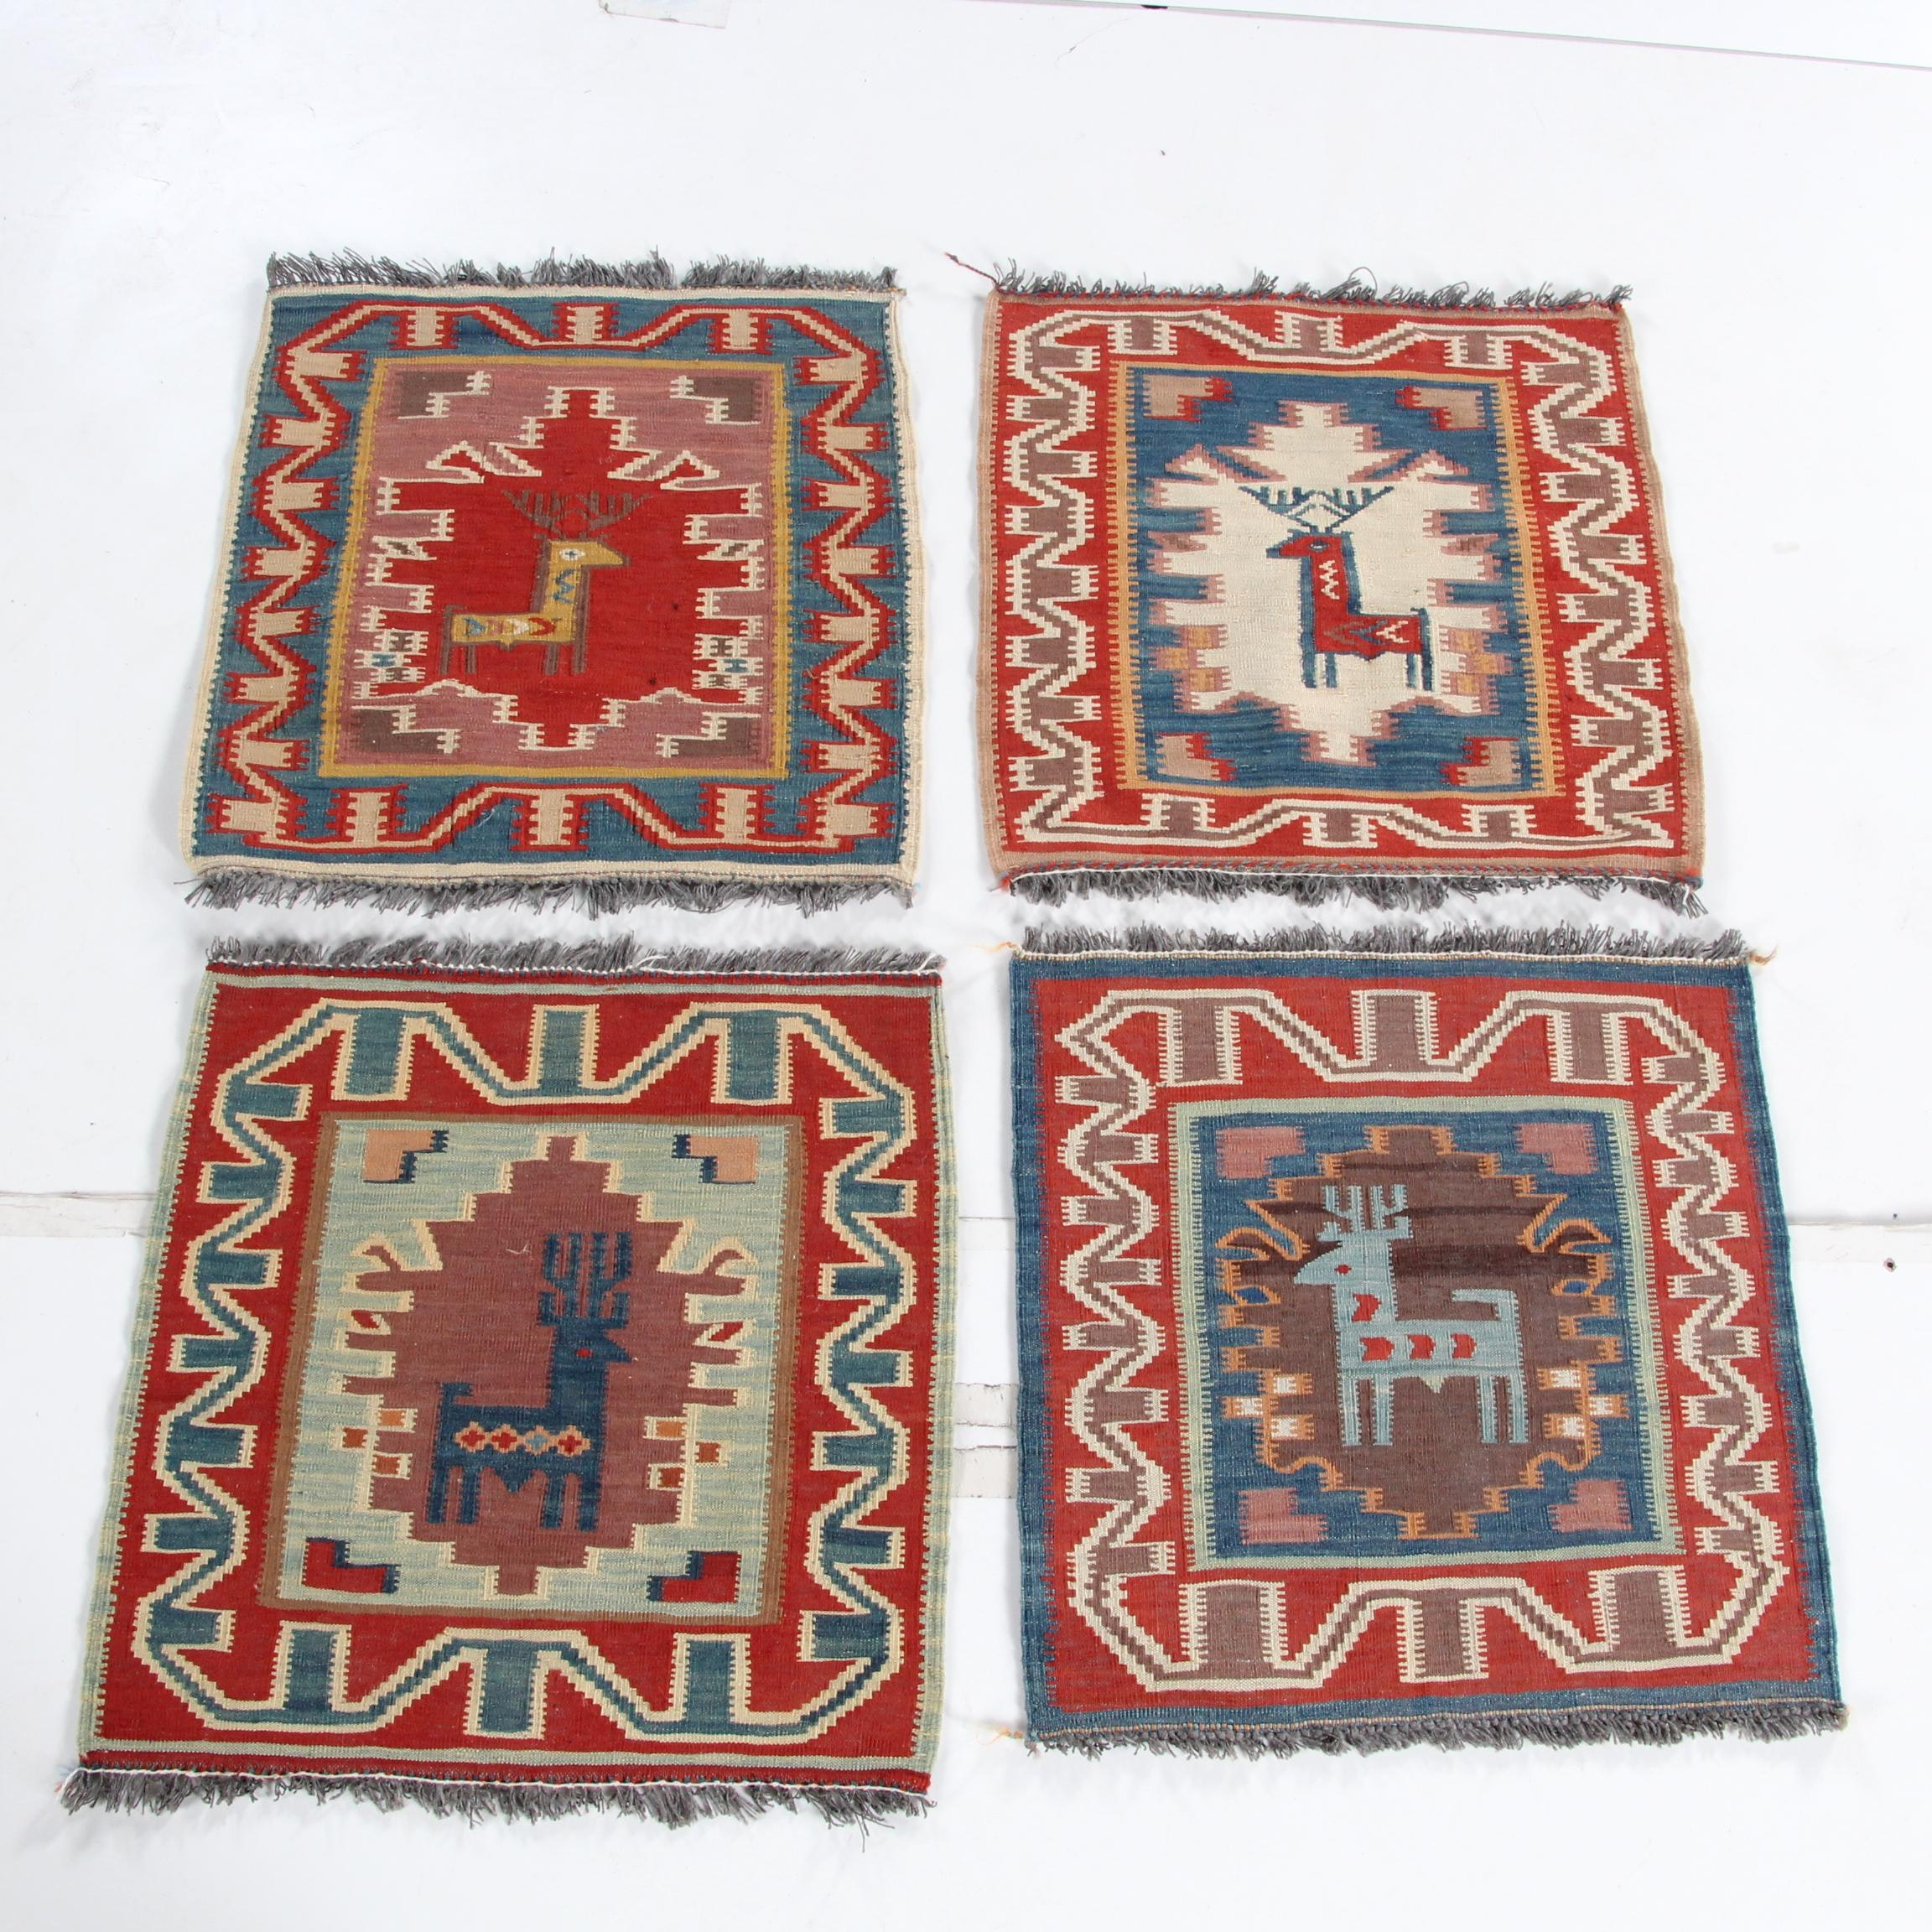 Handwoven Pictorial Wool Kilim Mats